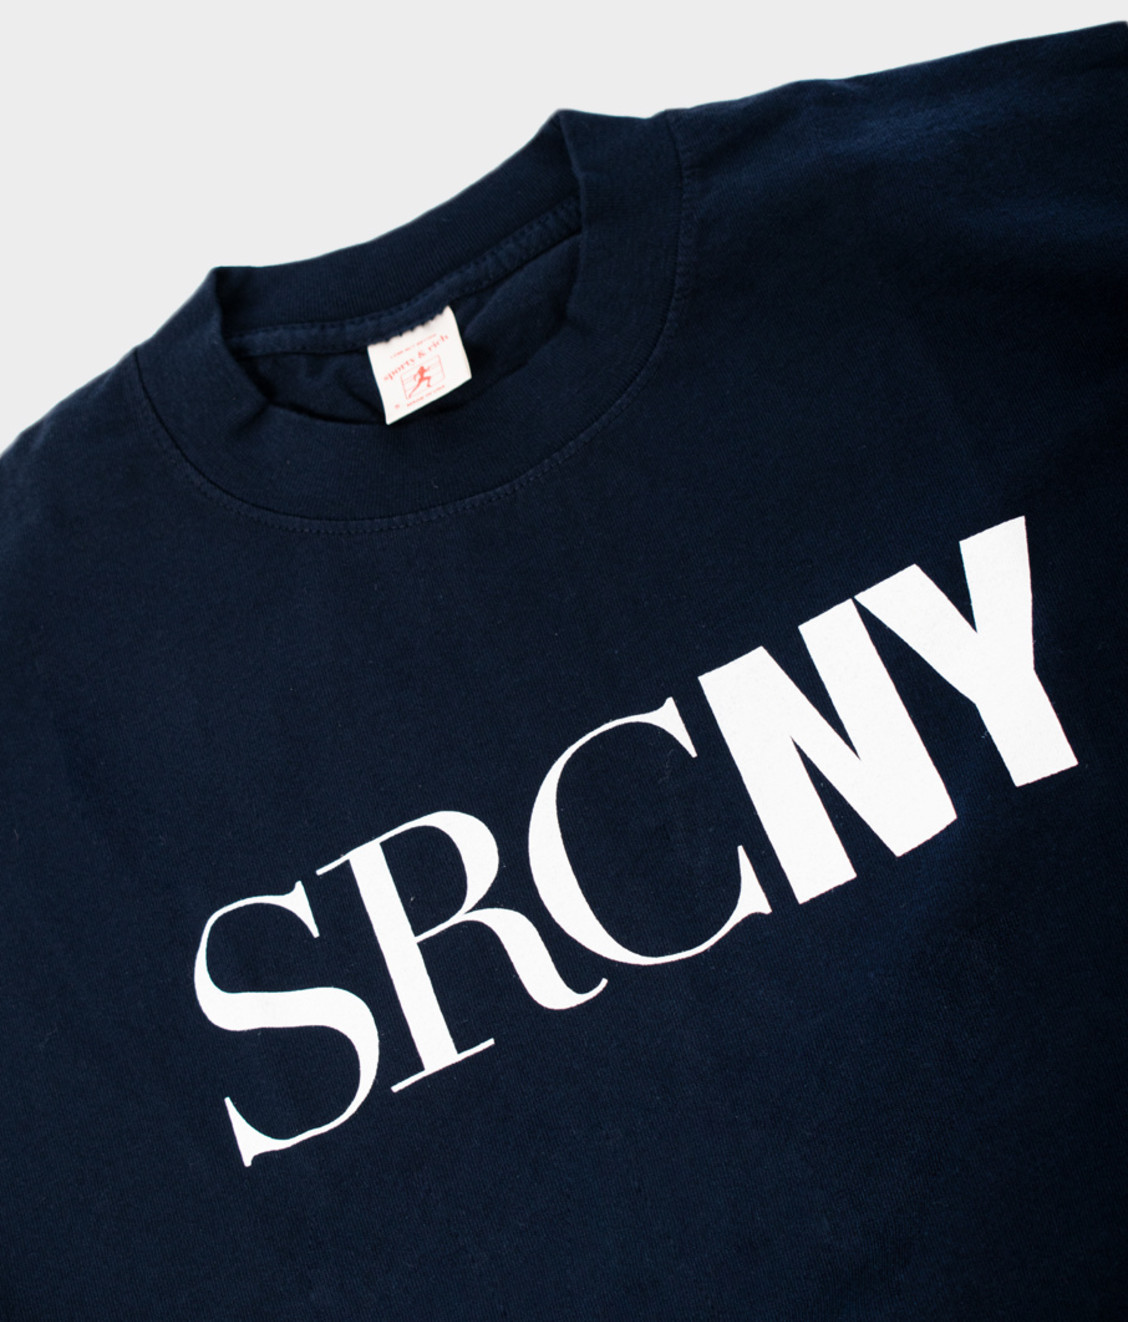 Sporty and Rich SR SRCNY Tee Navy White